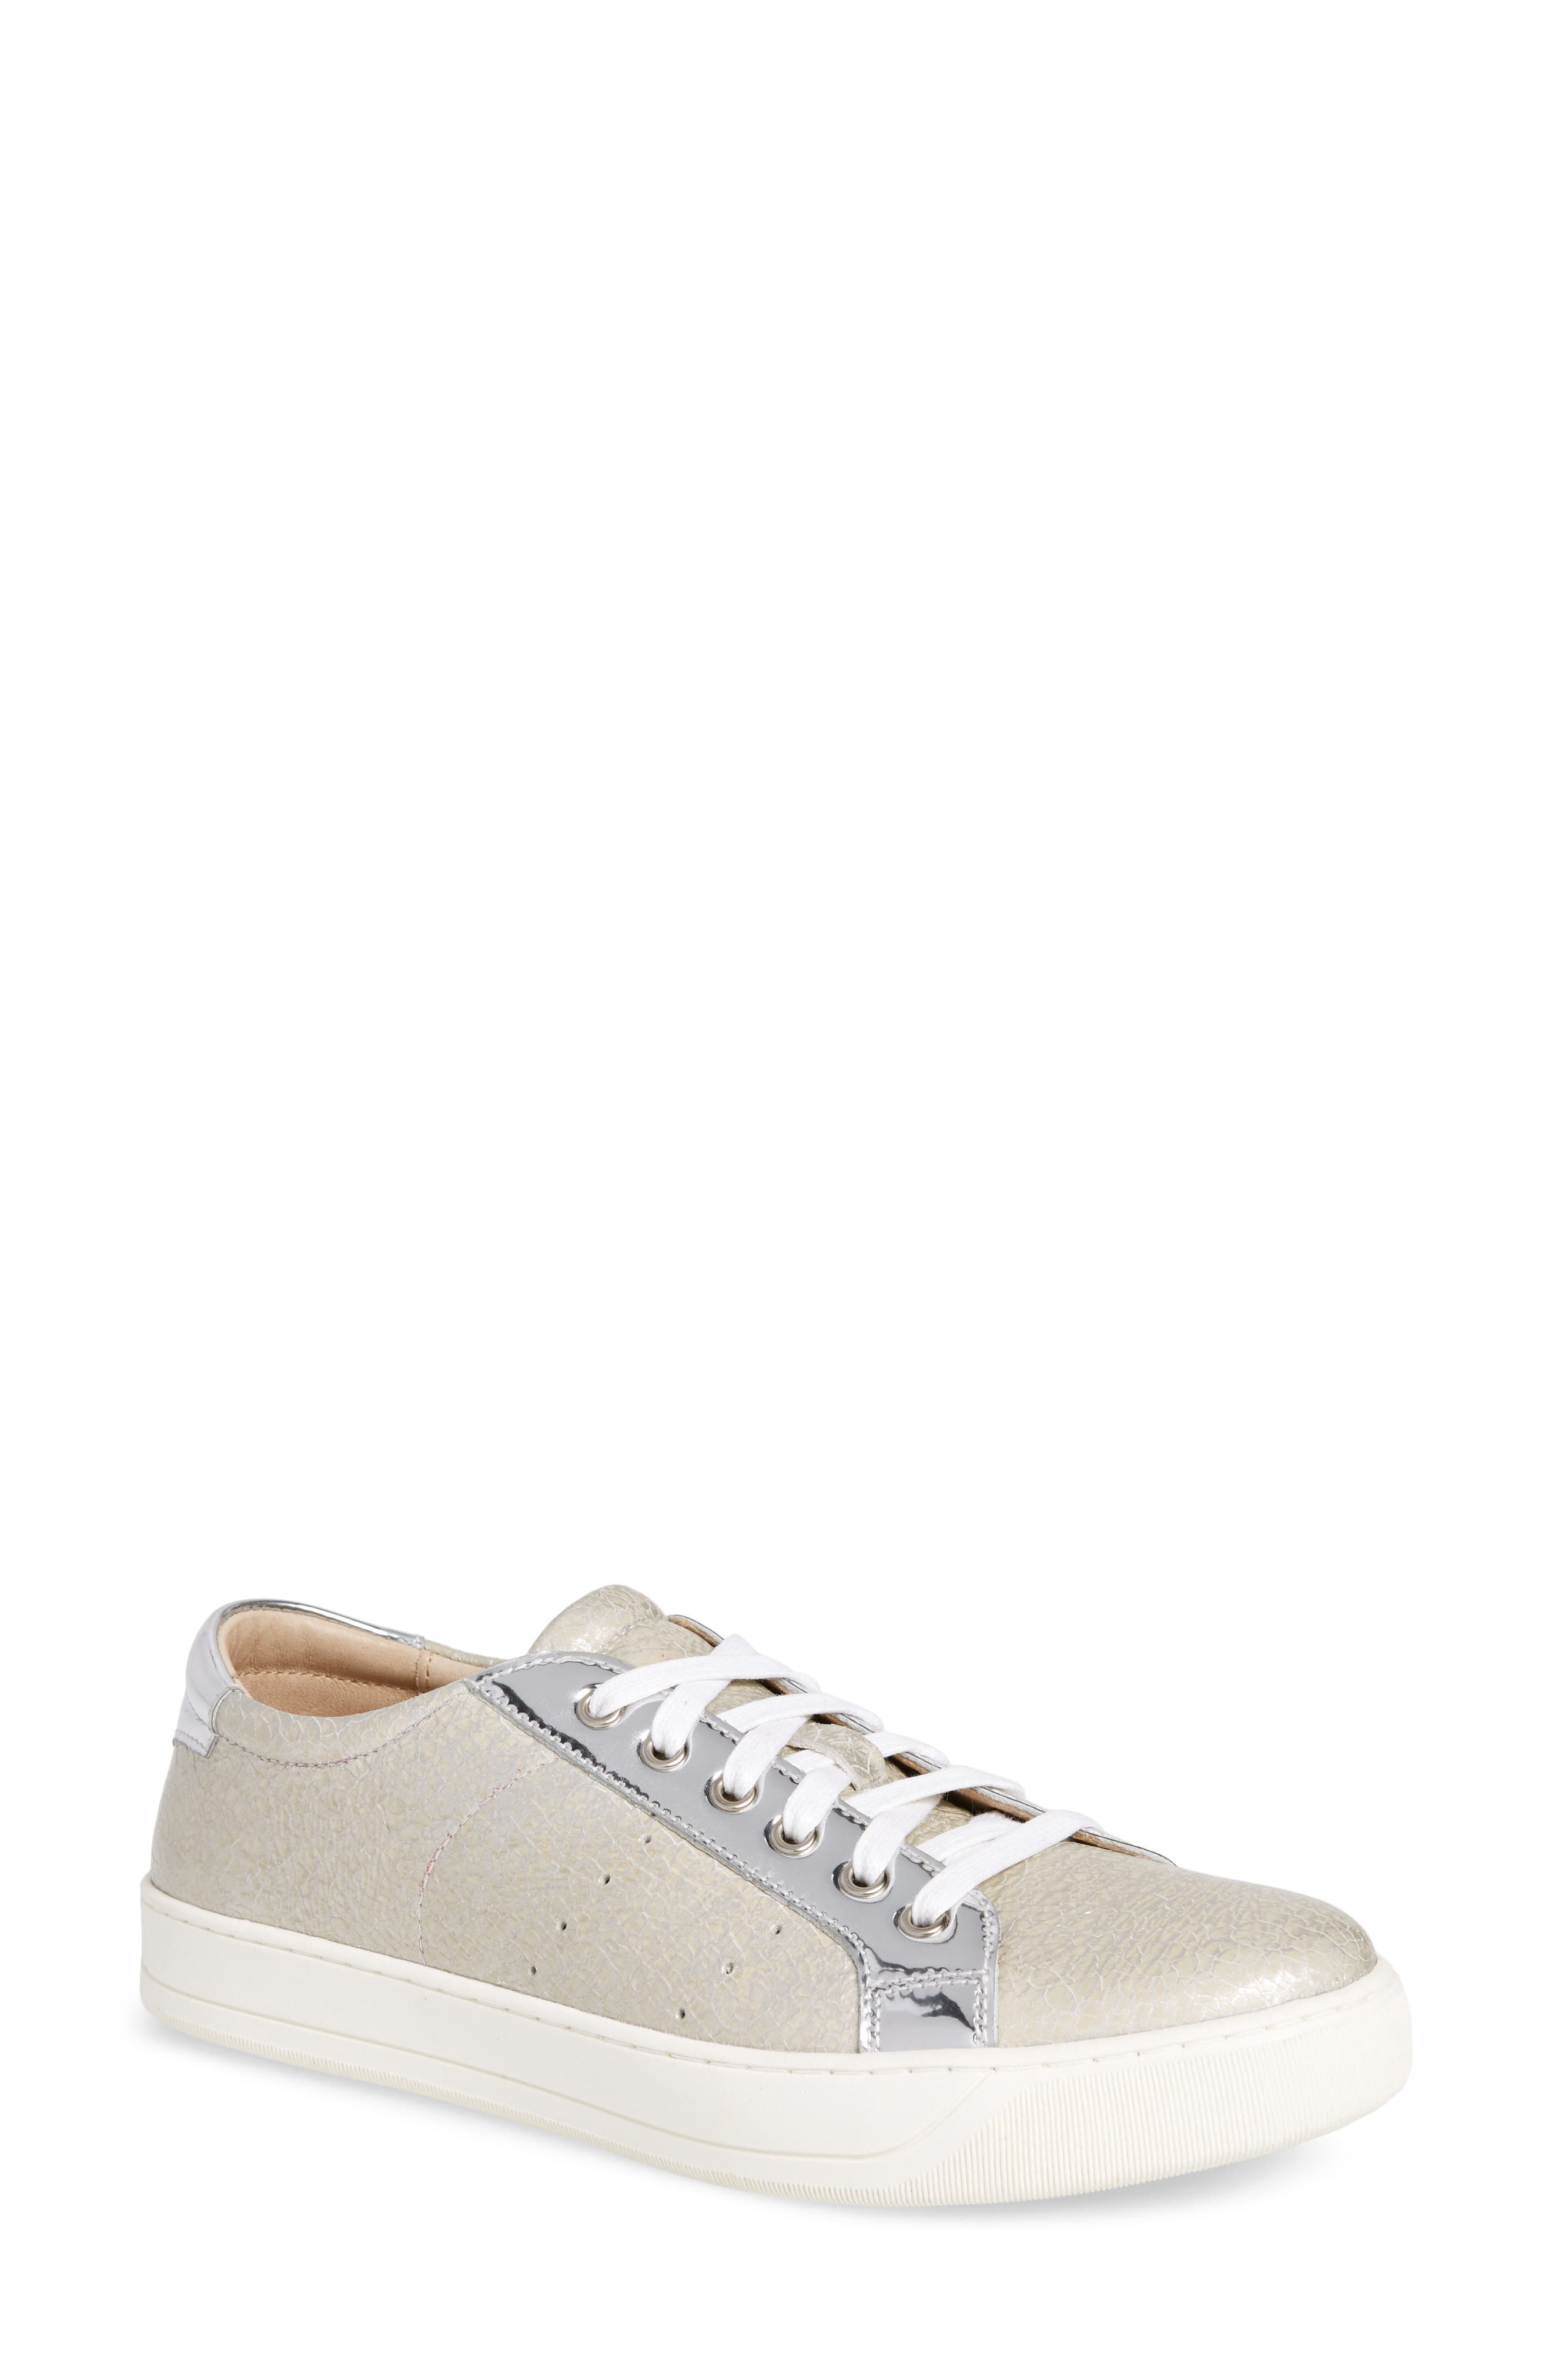 'Emerson' Sneaker, Main, color, ICE CRACKLE LEATHER